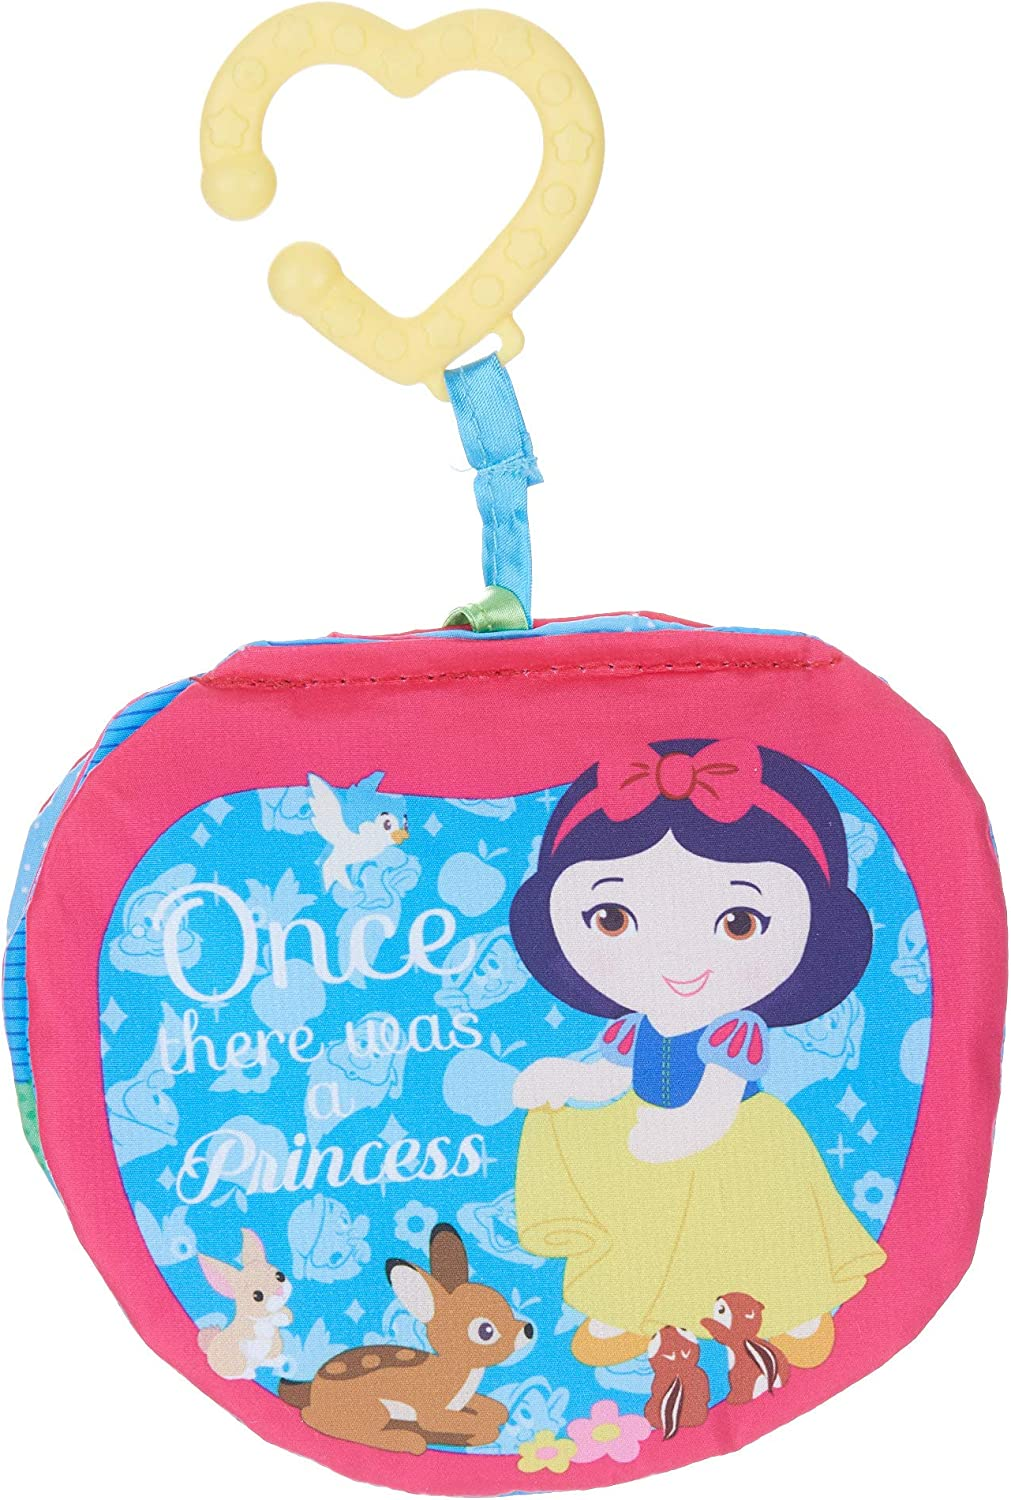 KIDS PREFERRED Disney Baby Princess Snow White Soft Book for Babies, Multicolor (81133)